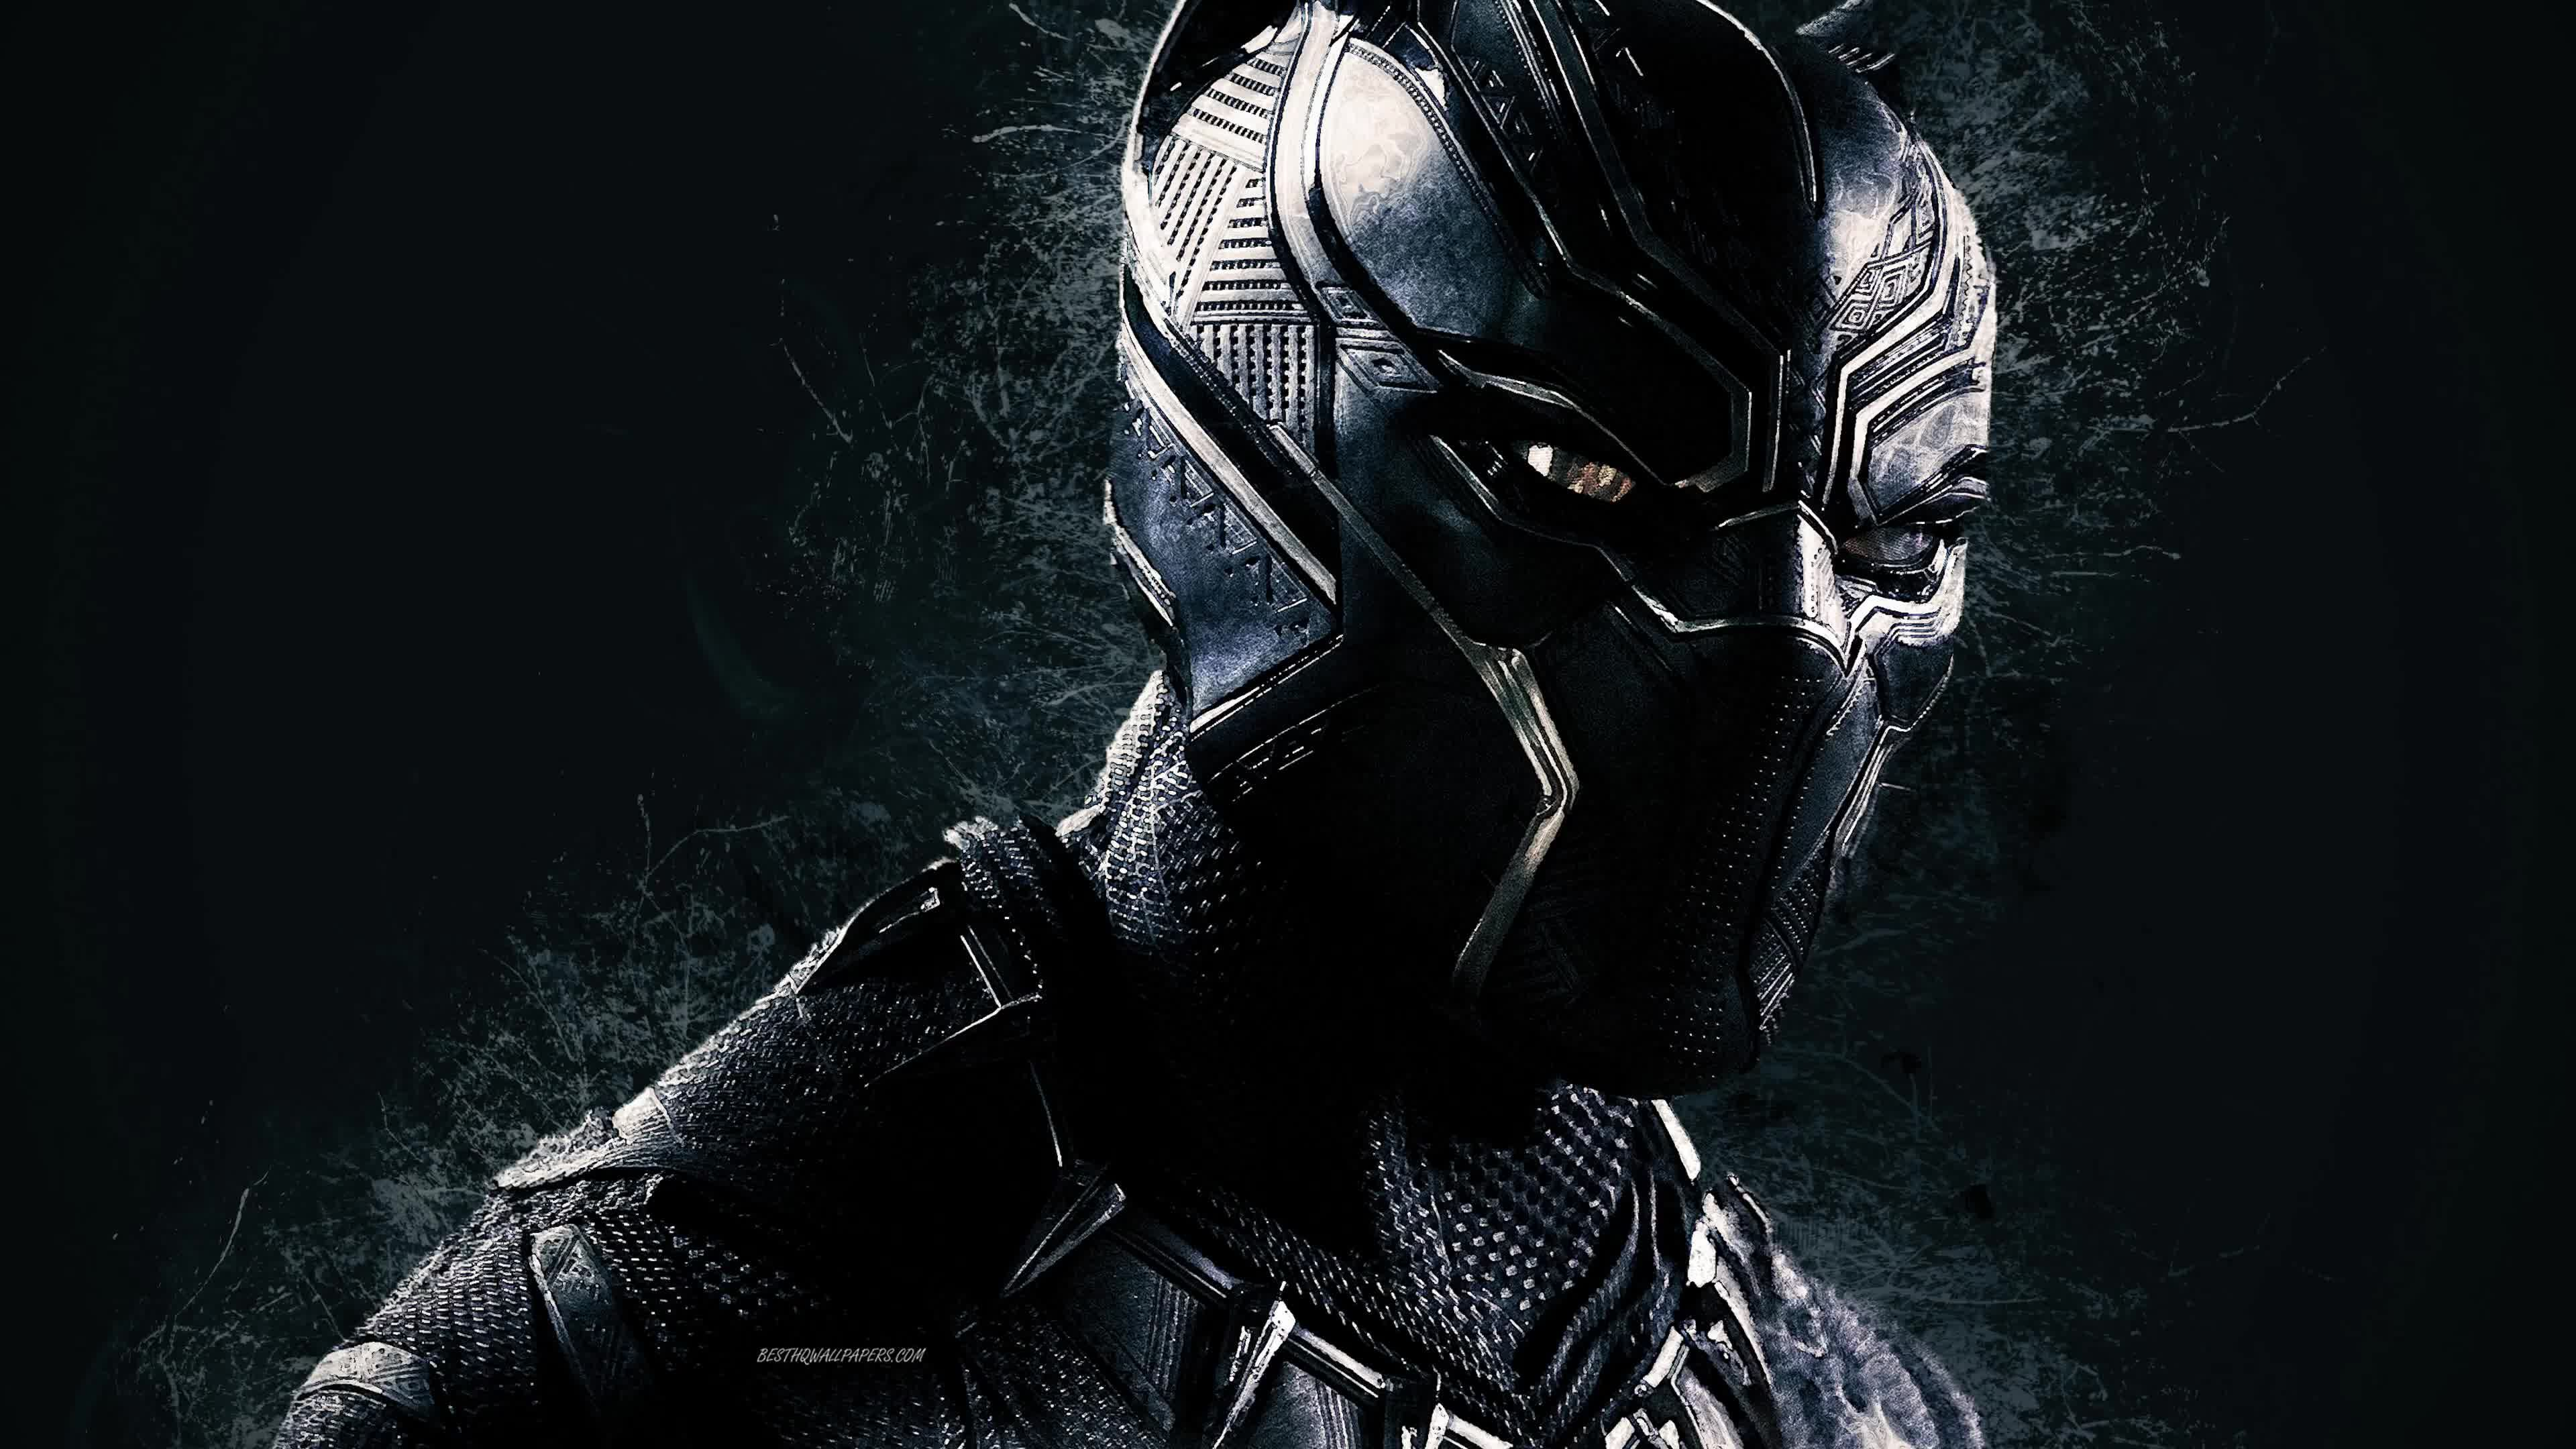 Marvel Black Panther 4k Live Wallpaper In 2020 4k Wallpapers For Pc Wallpaper Pc Gaming Wallpapers